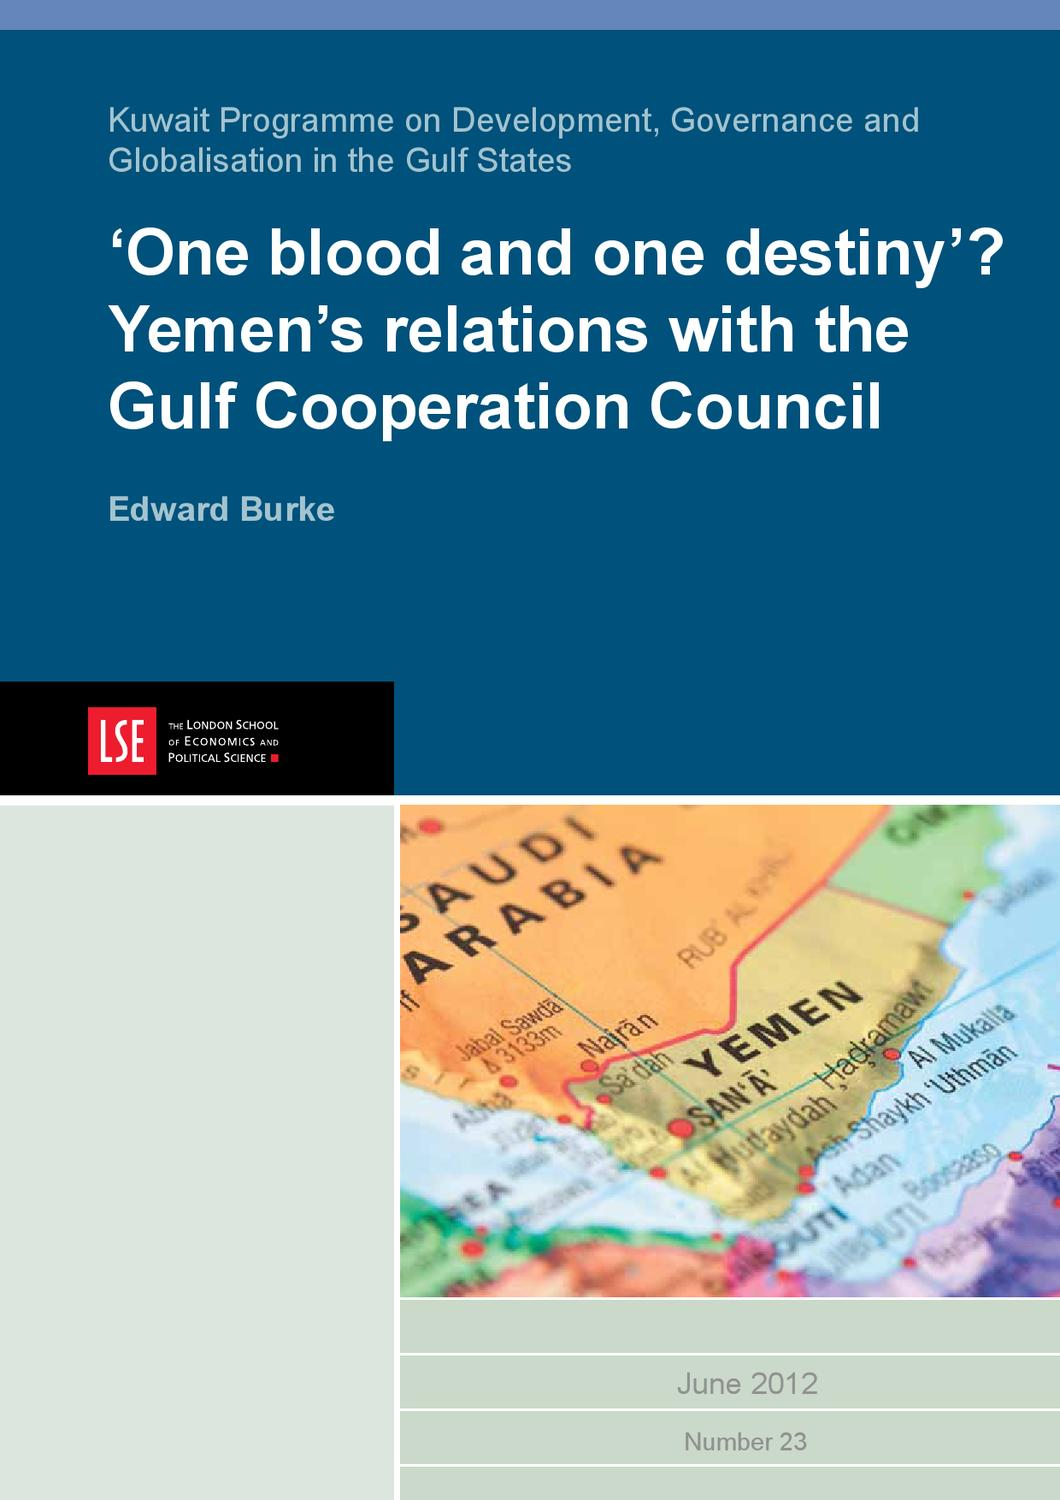 One blood and one destiny?' Yemen's relations with the Gulf